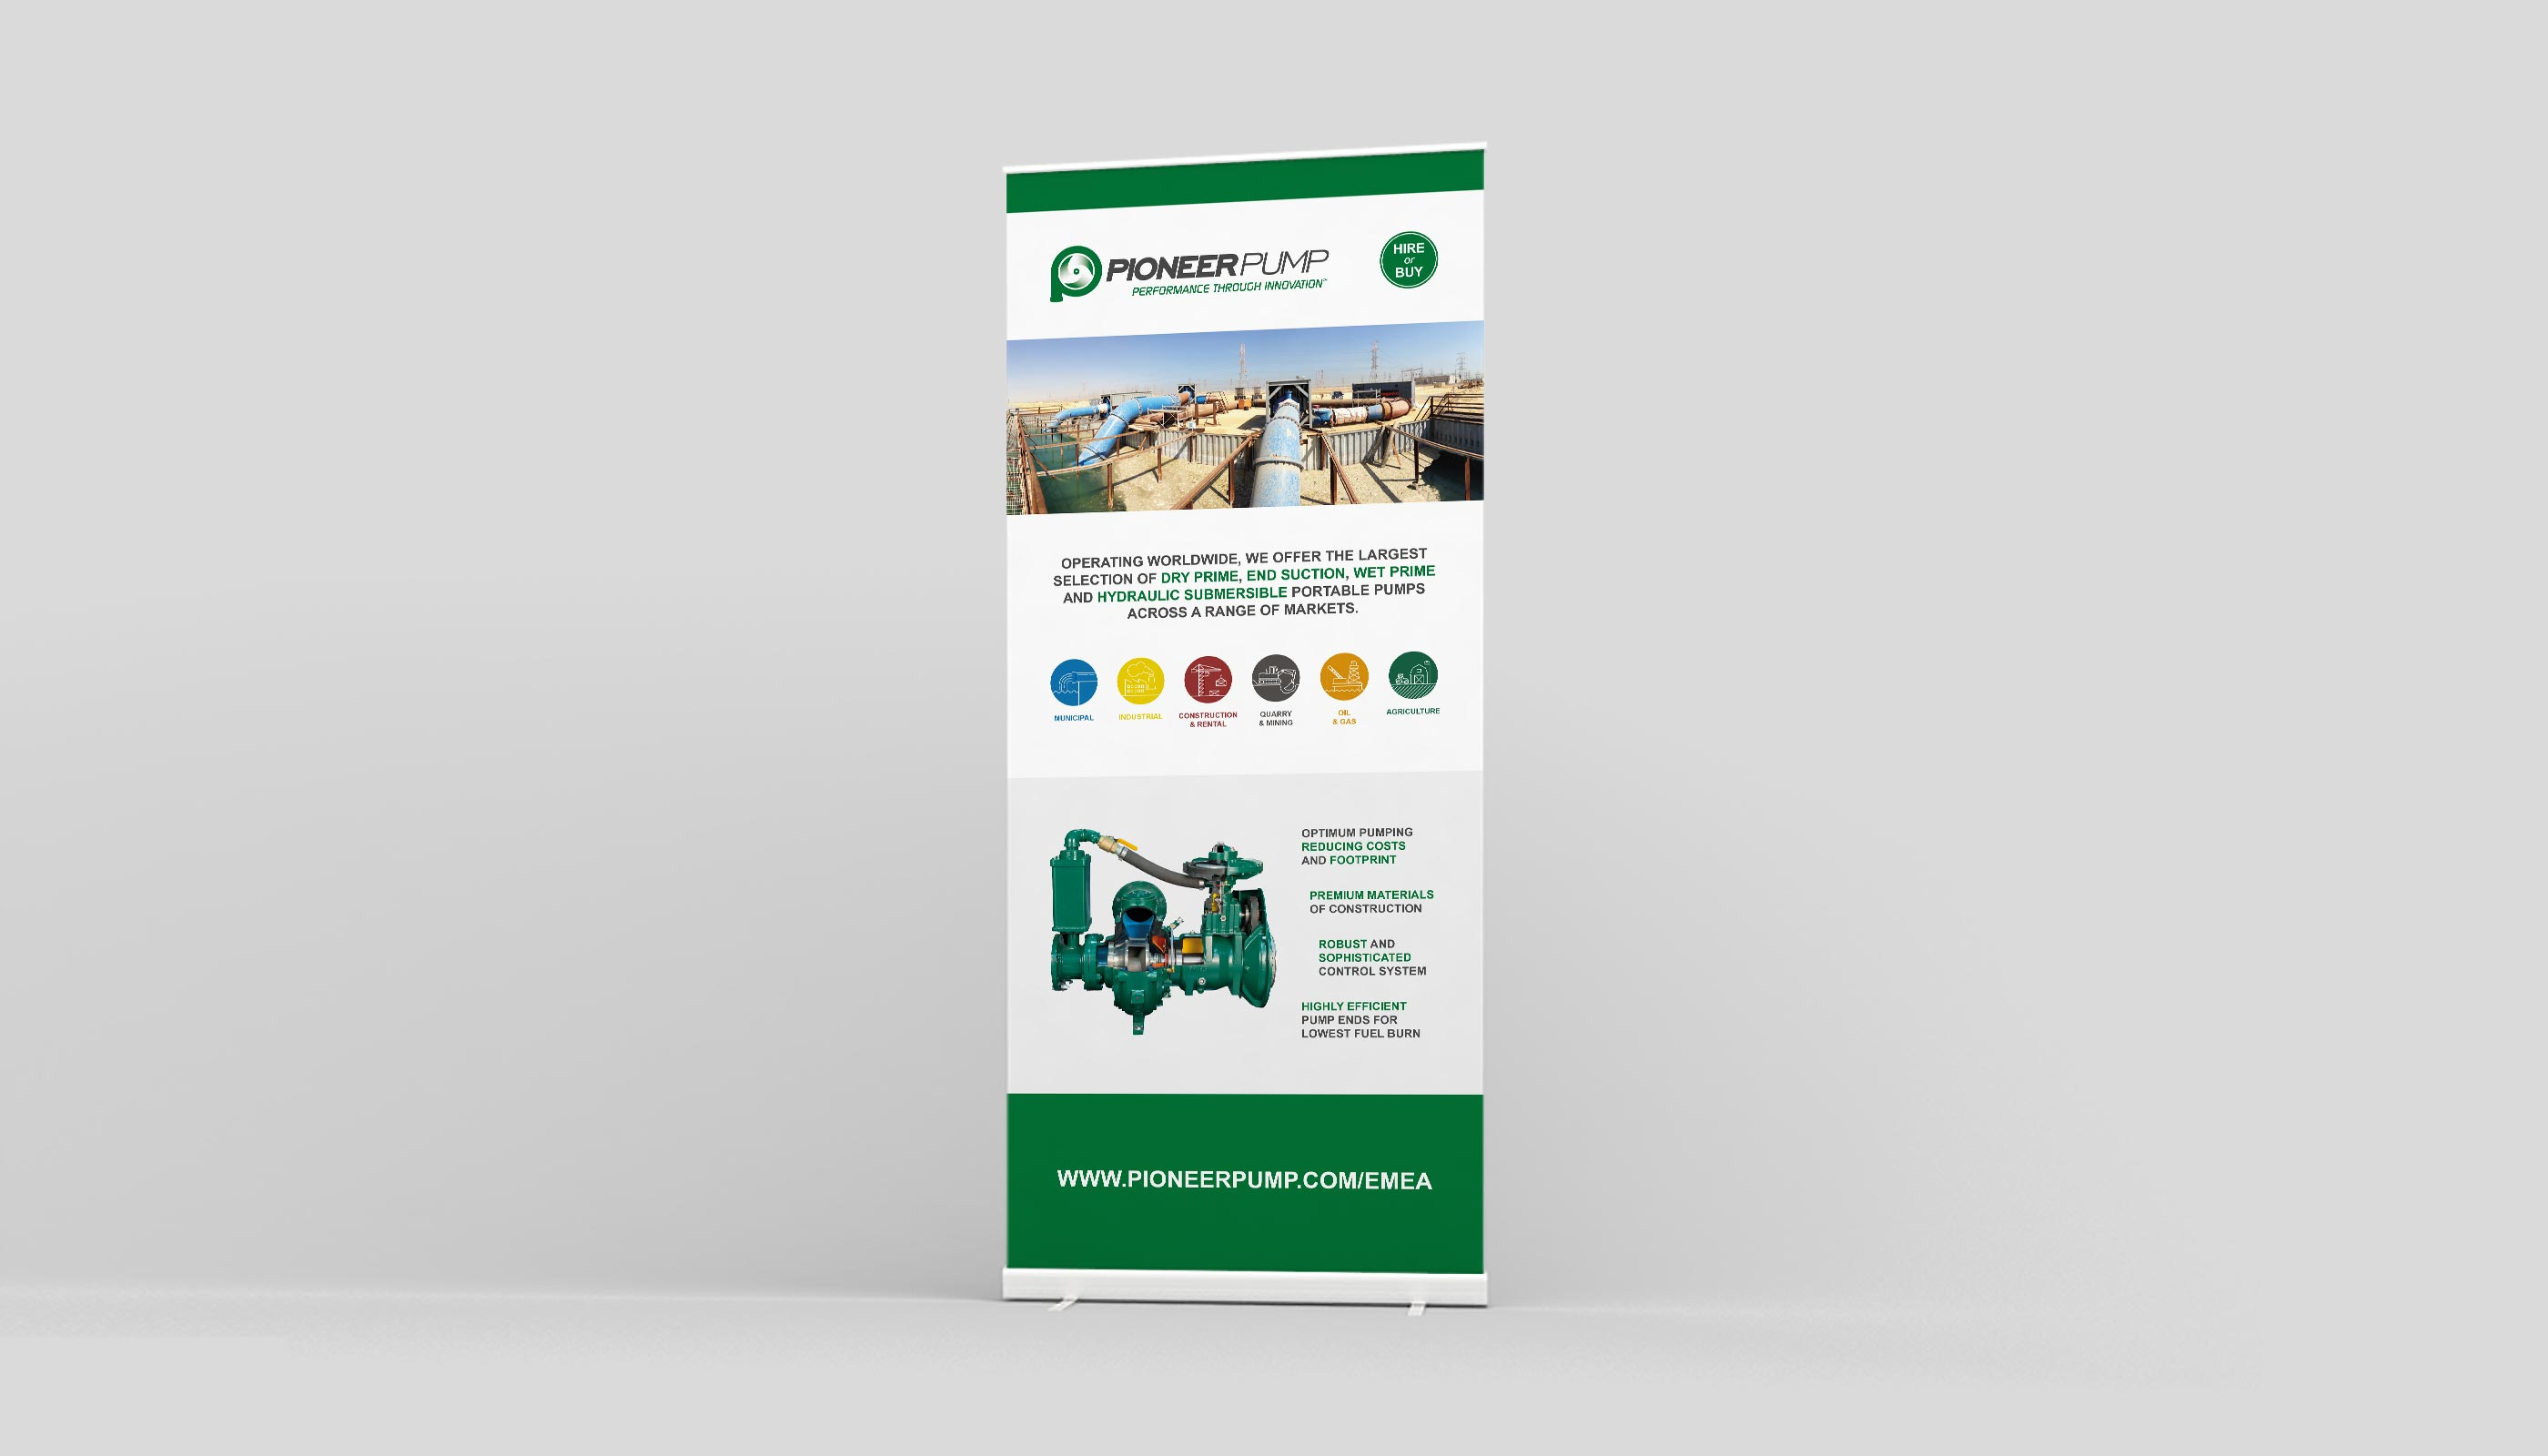 Roll up banner design for Pioneer Pump in Suffolk, UK.